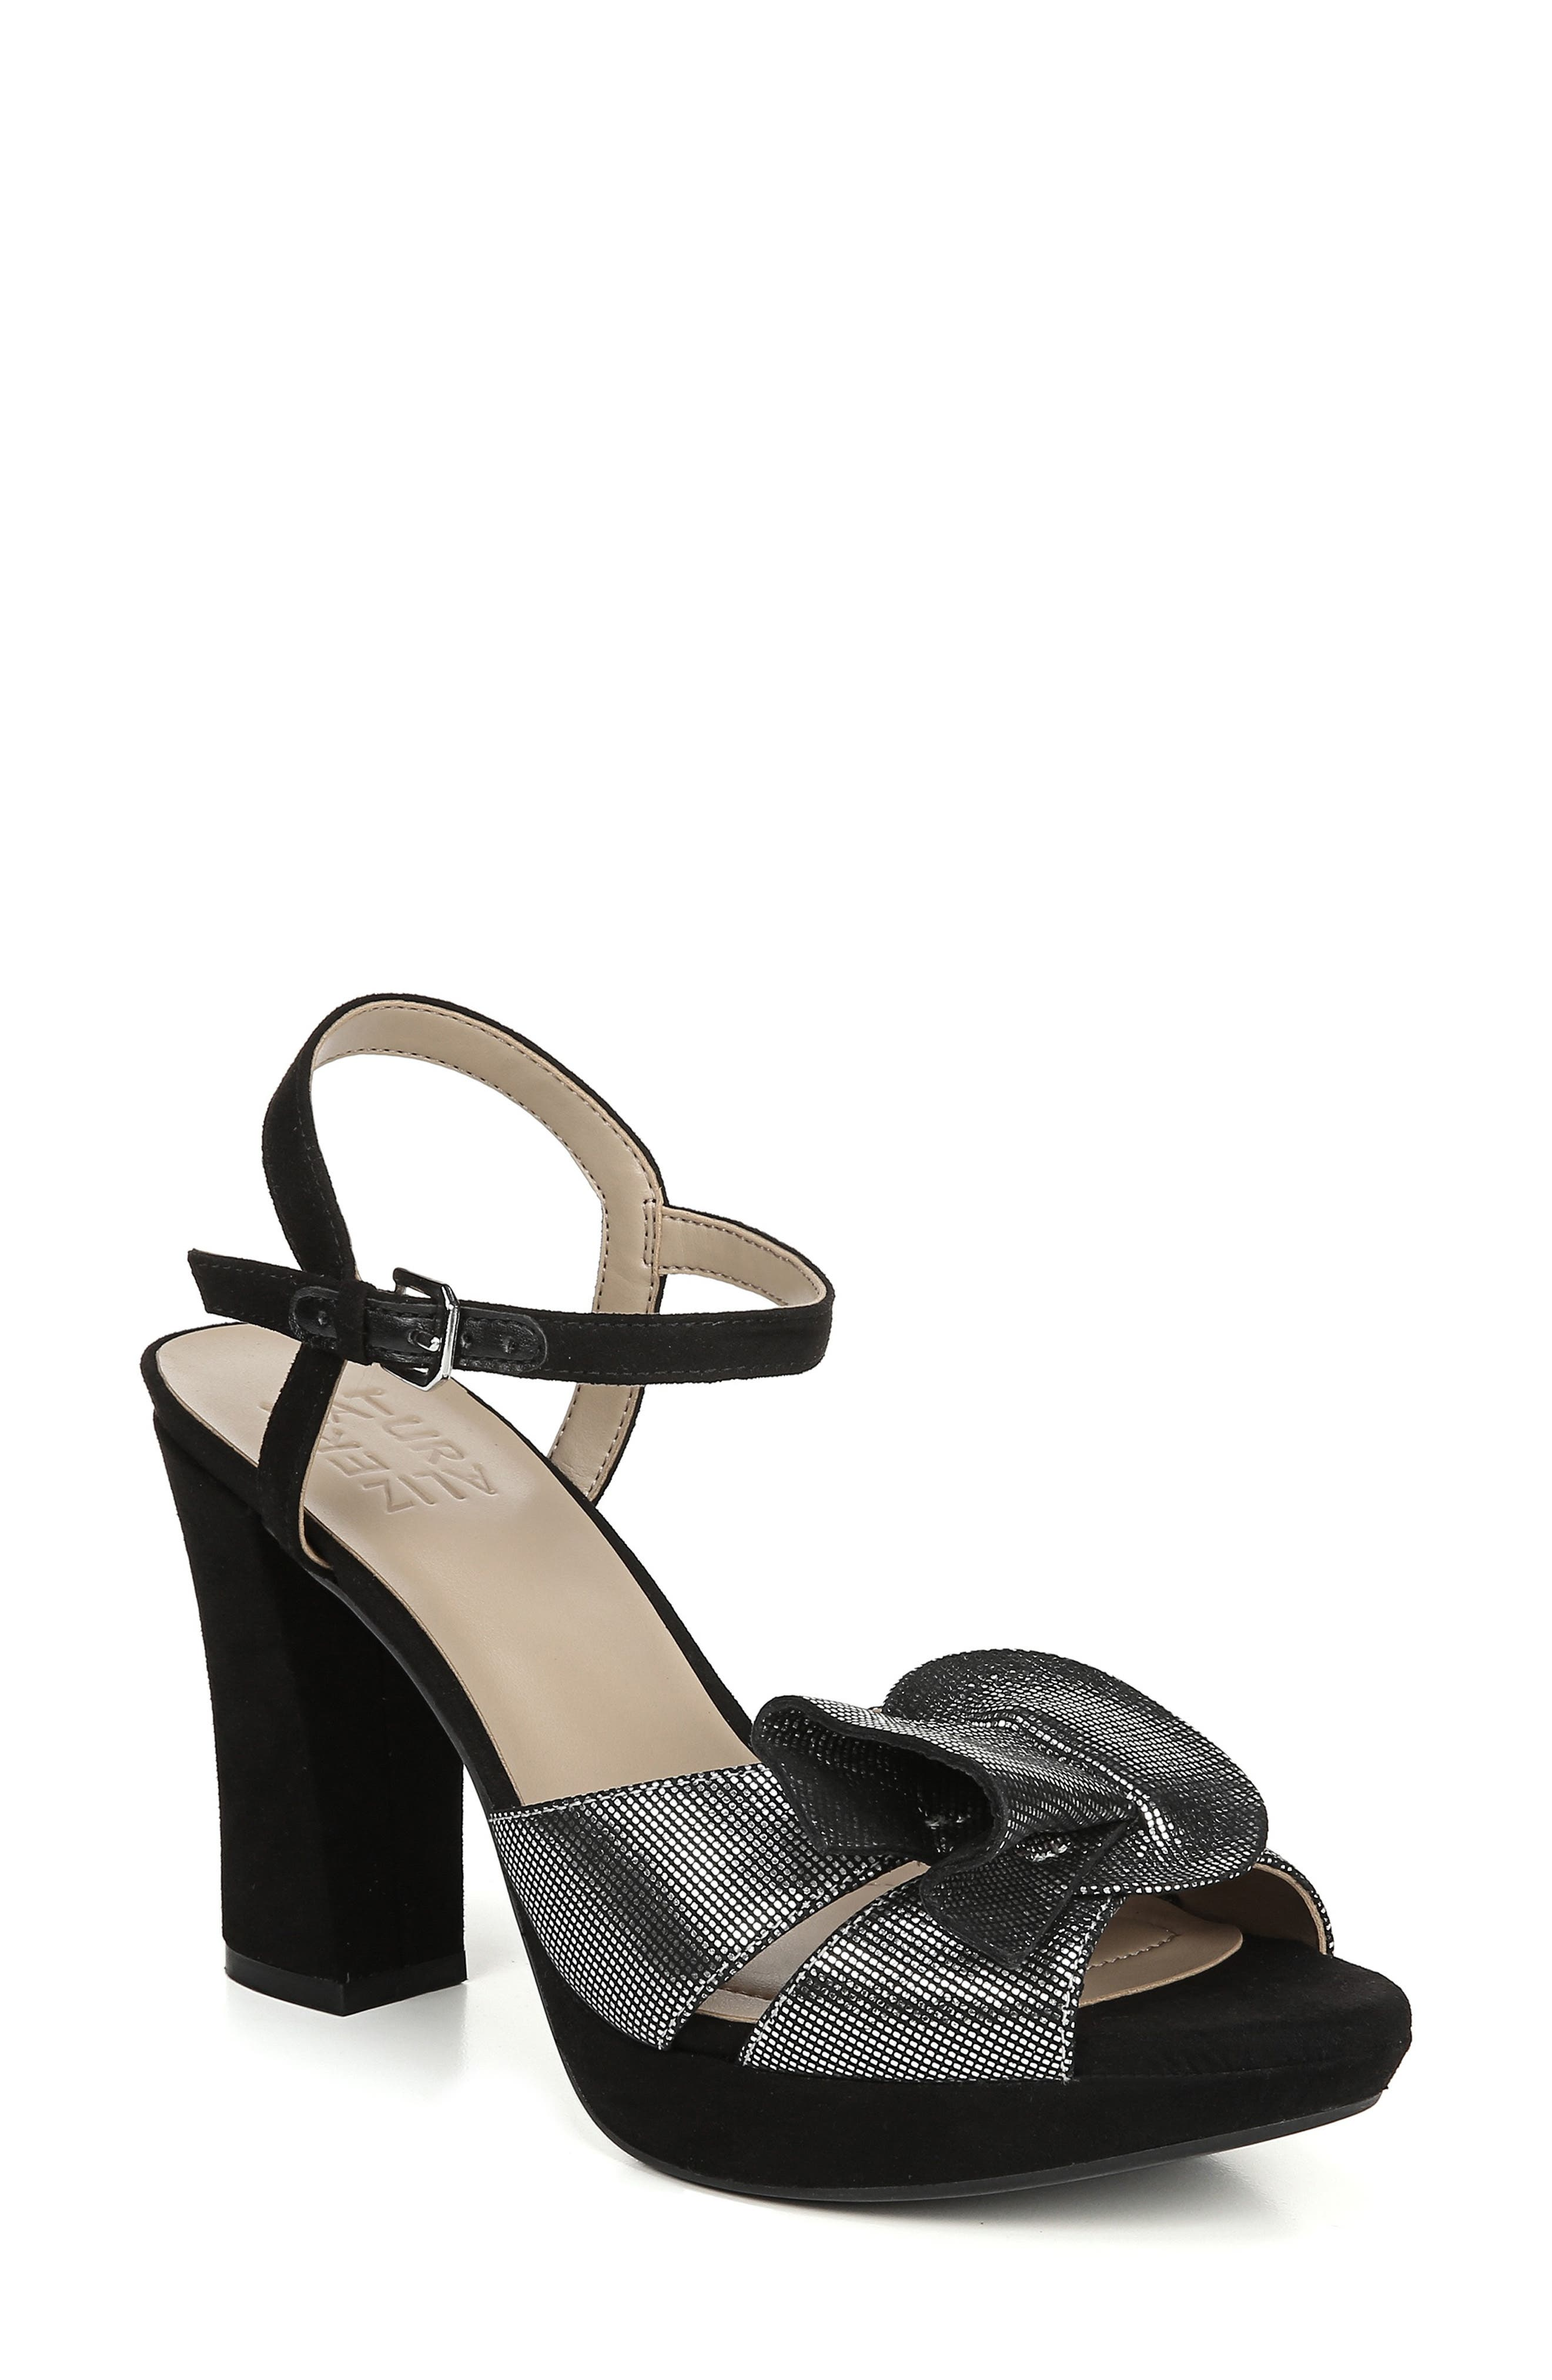 Adelle Sandal,                             Main thumbnail 1, color,                             Silver/ Black Leather